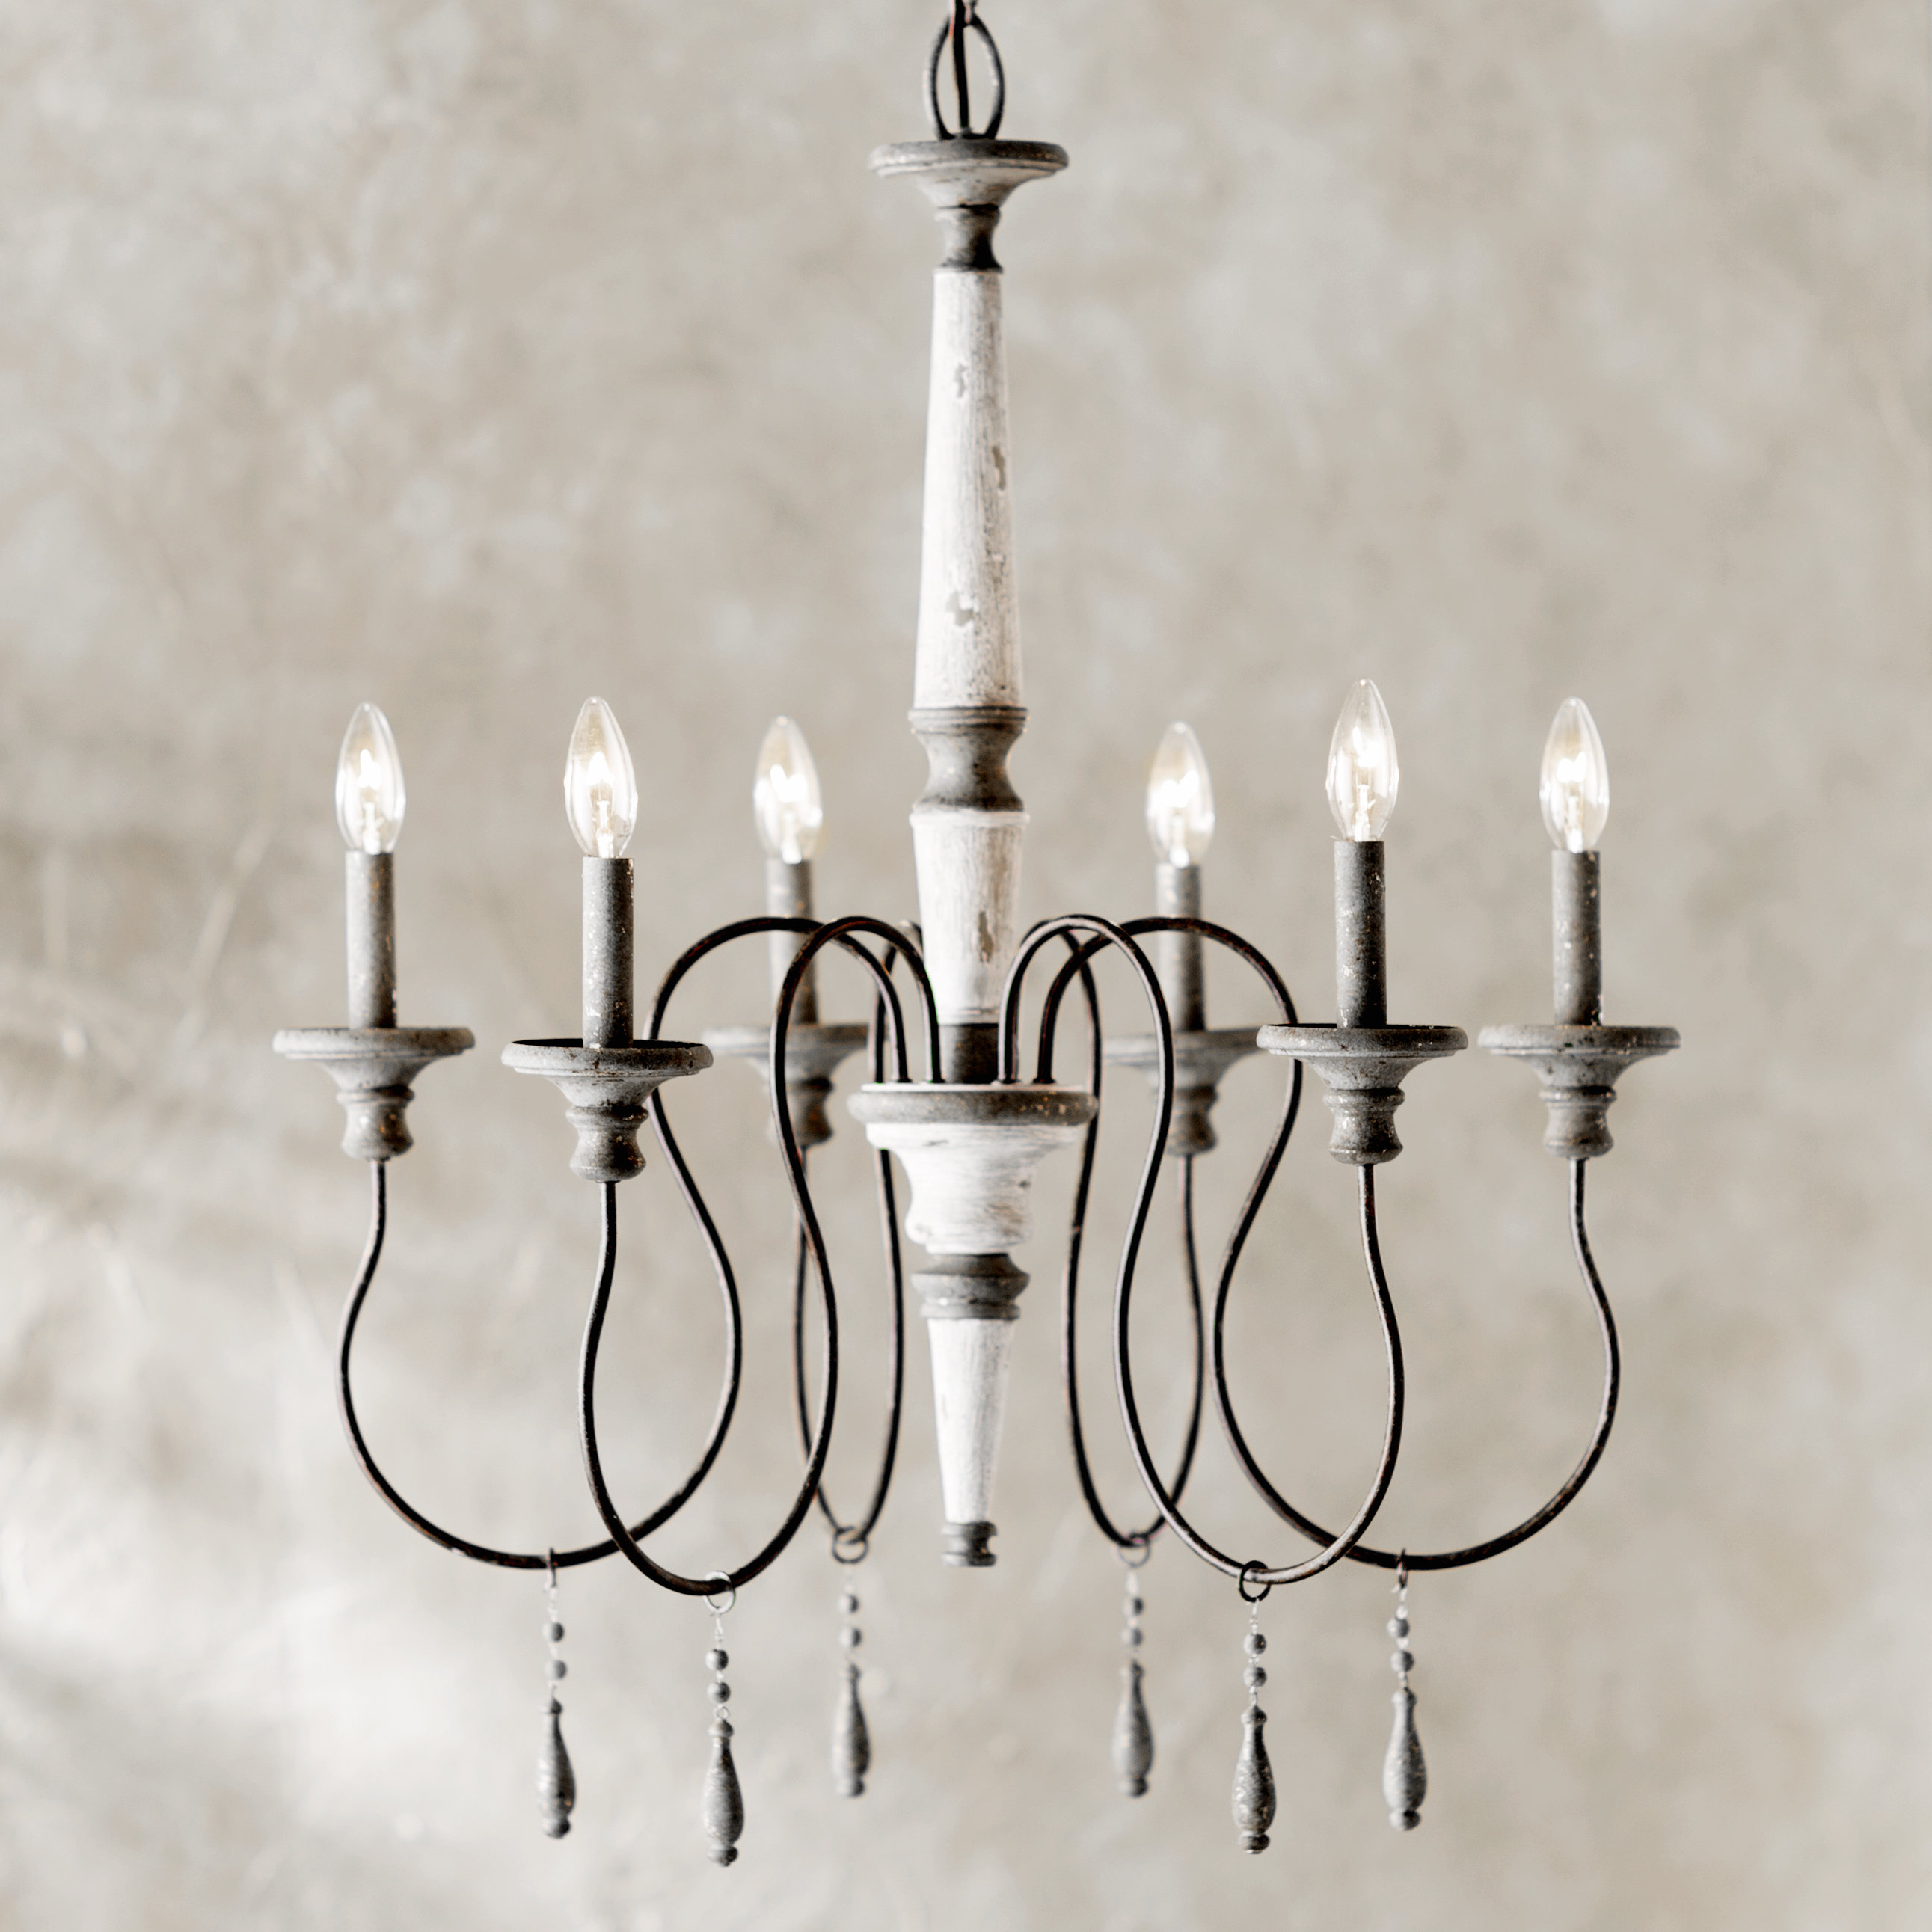 Widely Used Armande Candle Style Chandeliers With Regard To Armande Candle Style Chandelier (View 2 of 25)